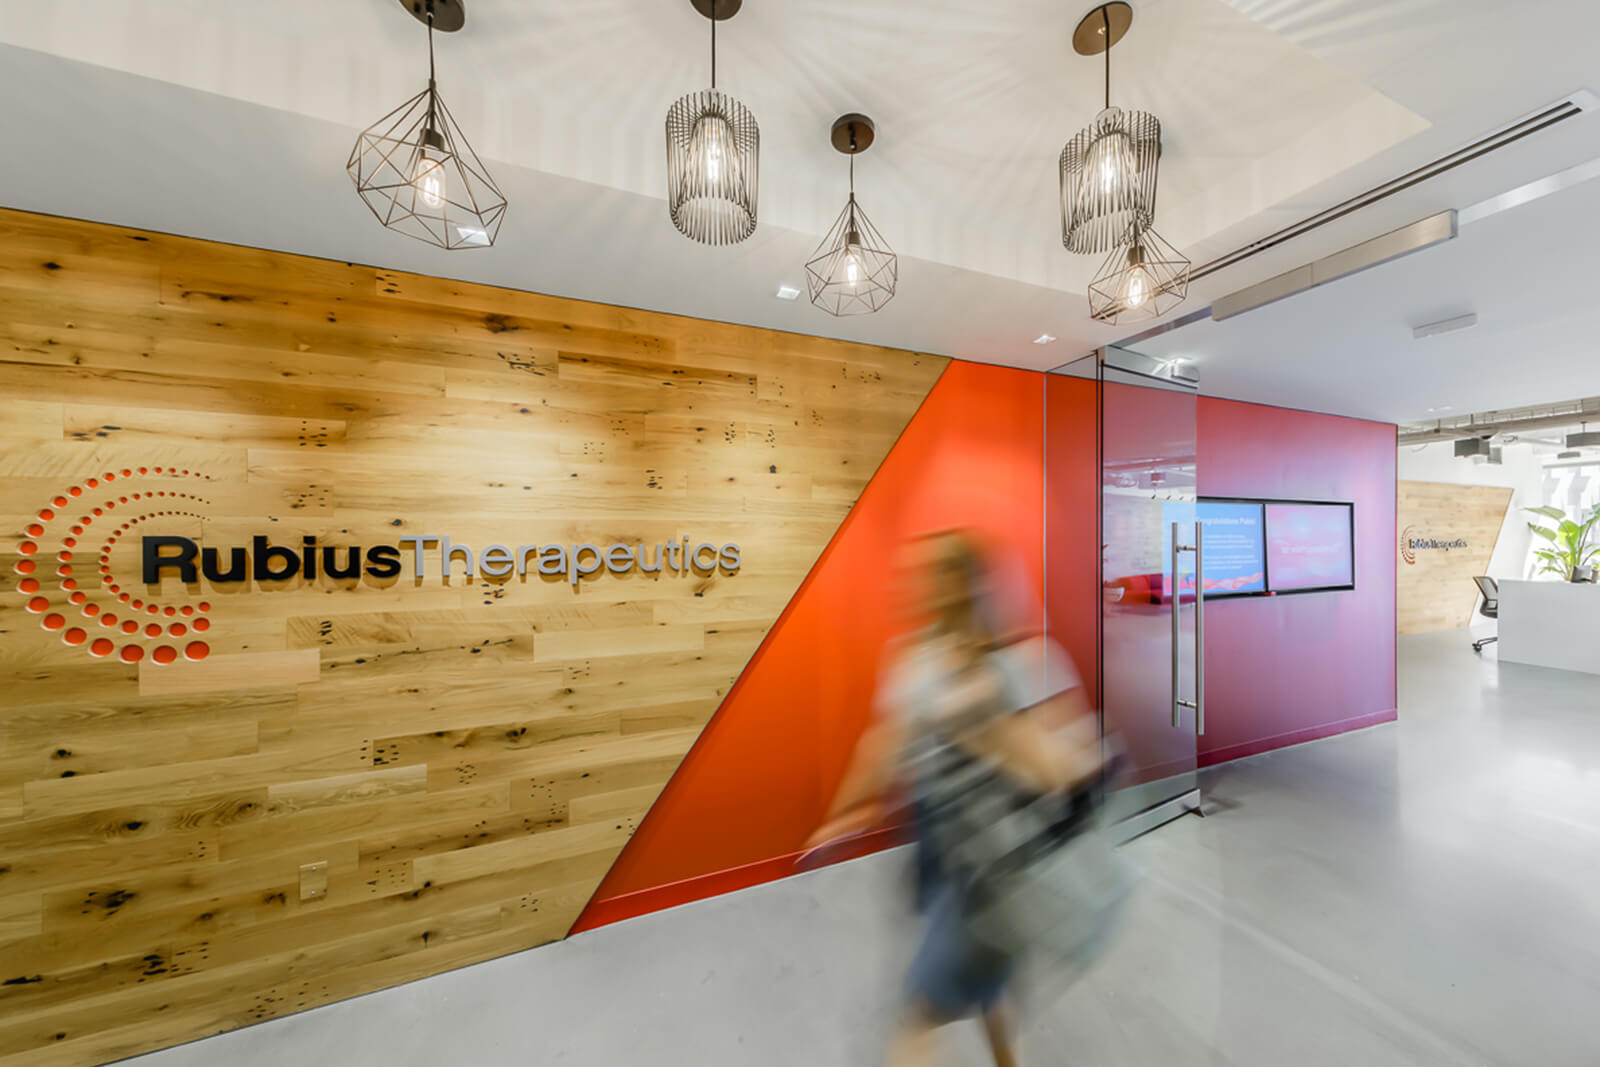 design build services firm for rubius therapeutics